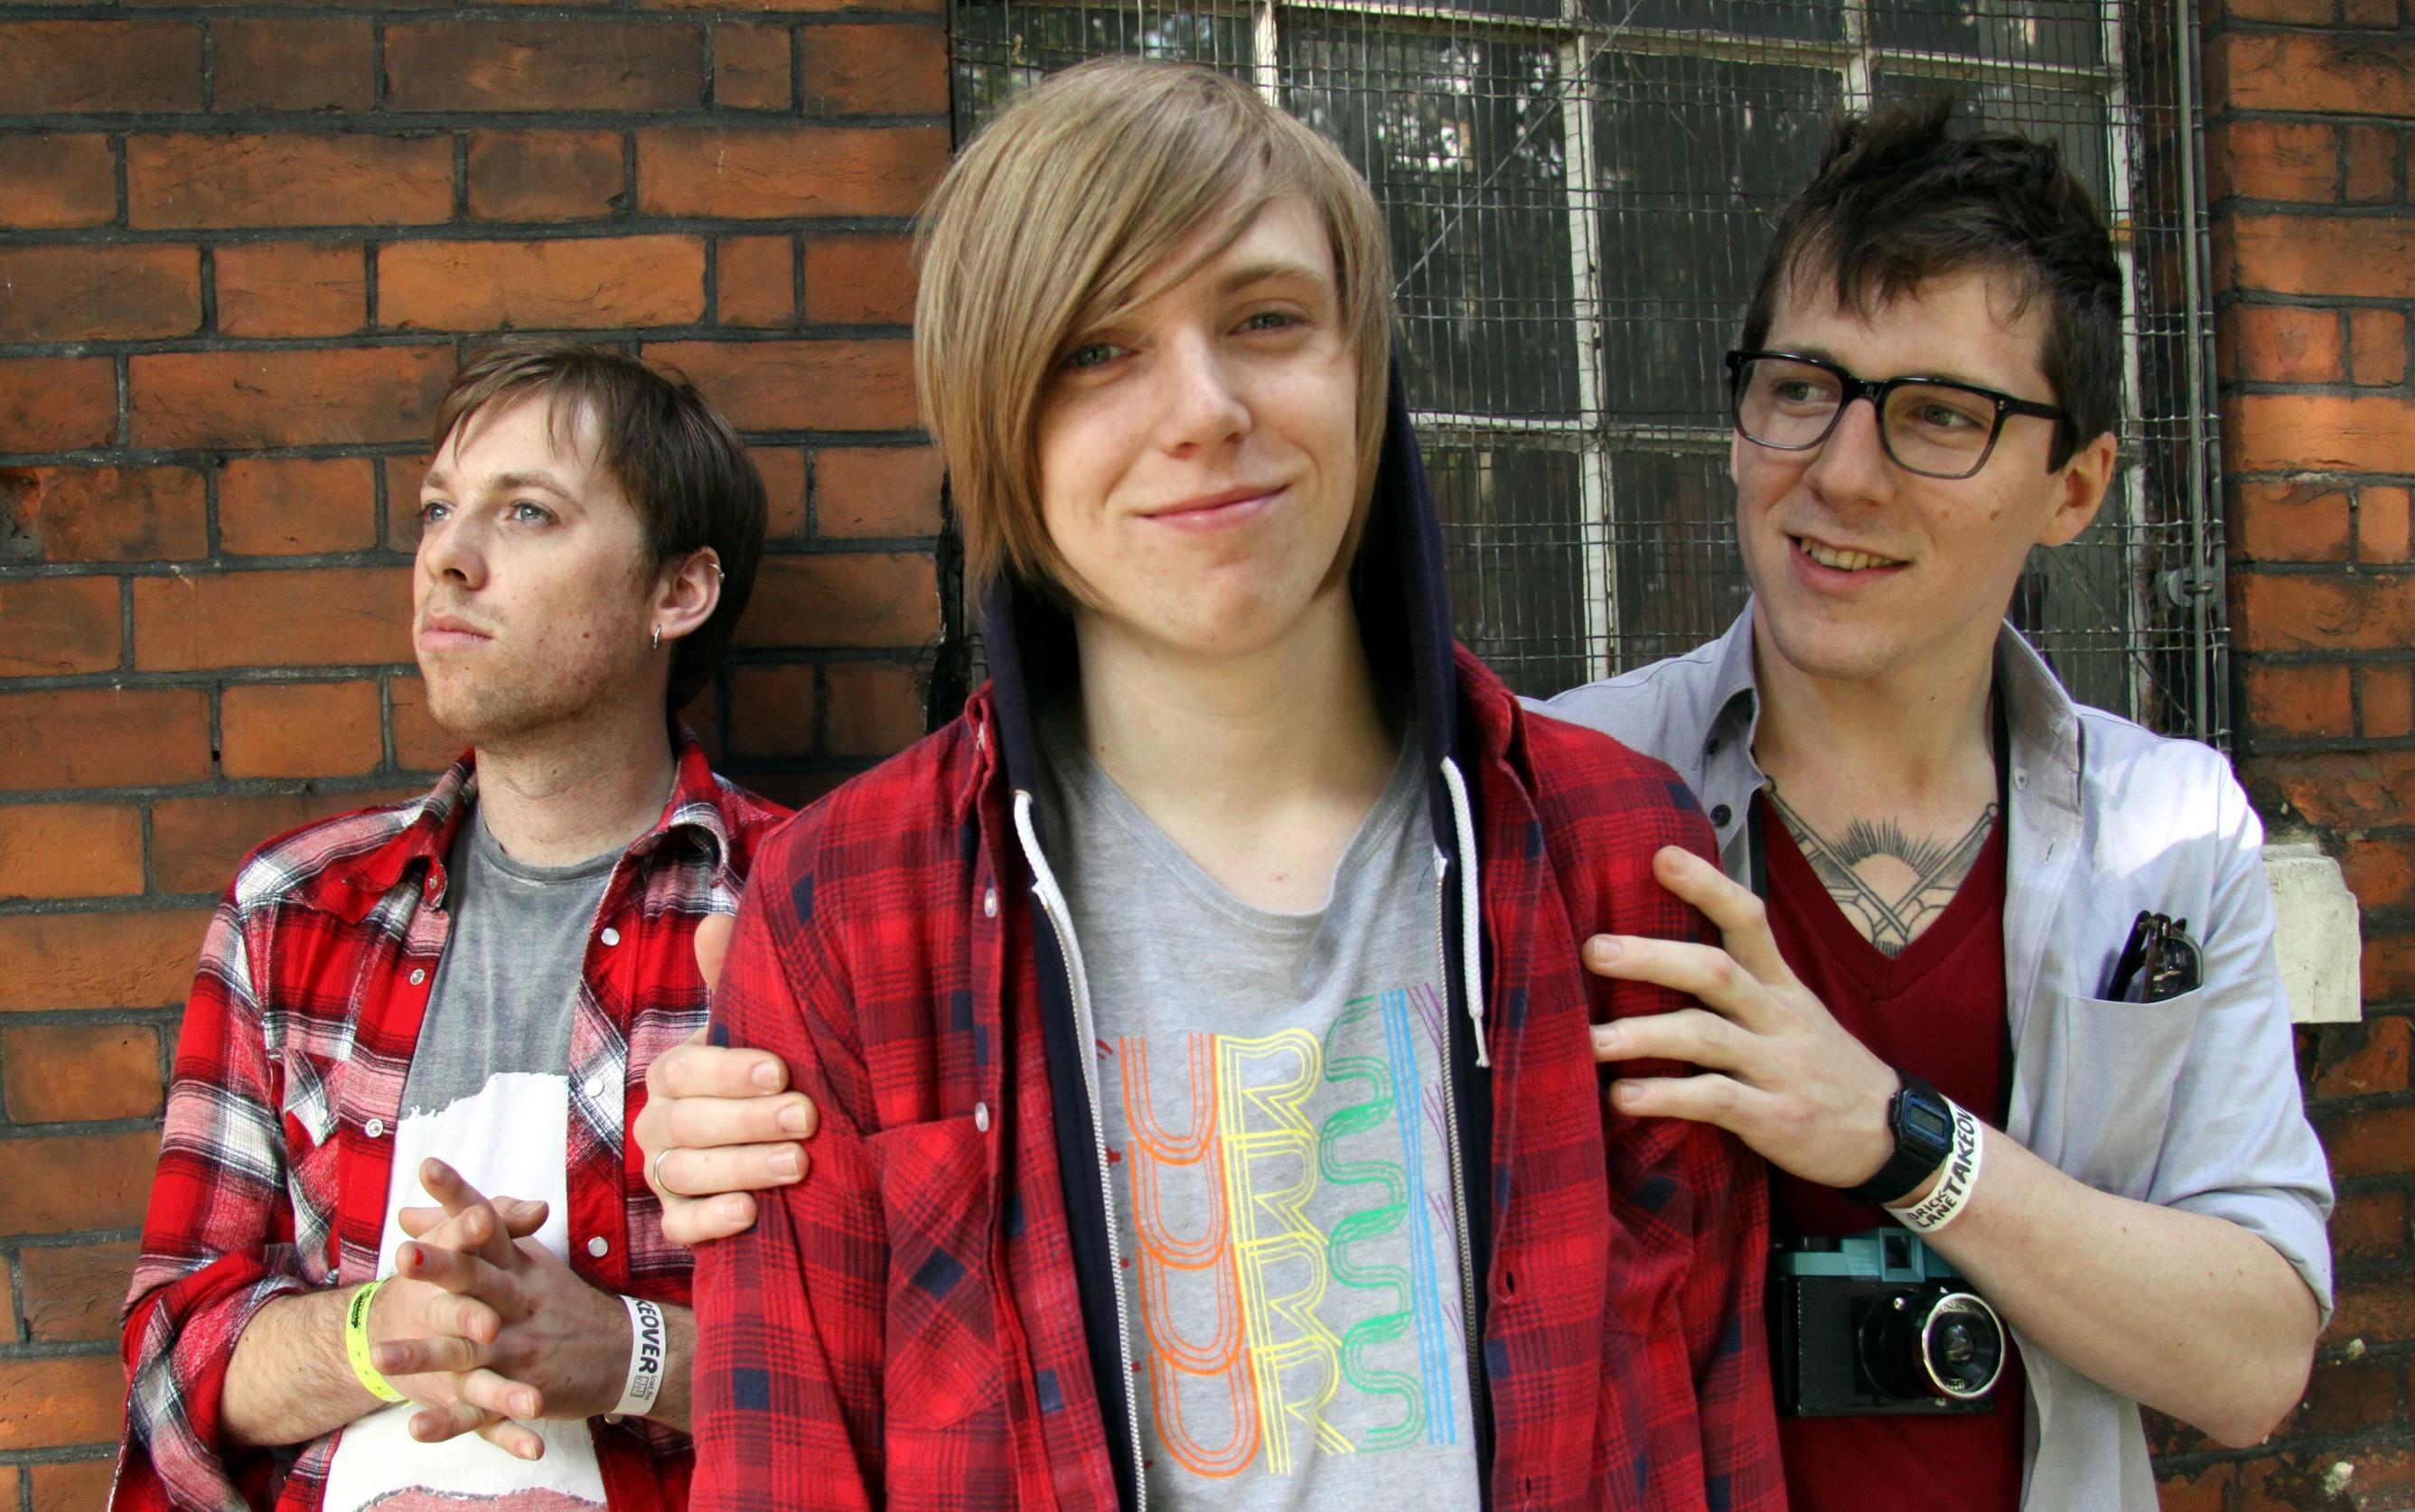 The Xcerts are to  perform at Y Not Festival in Derbyshire.